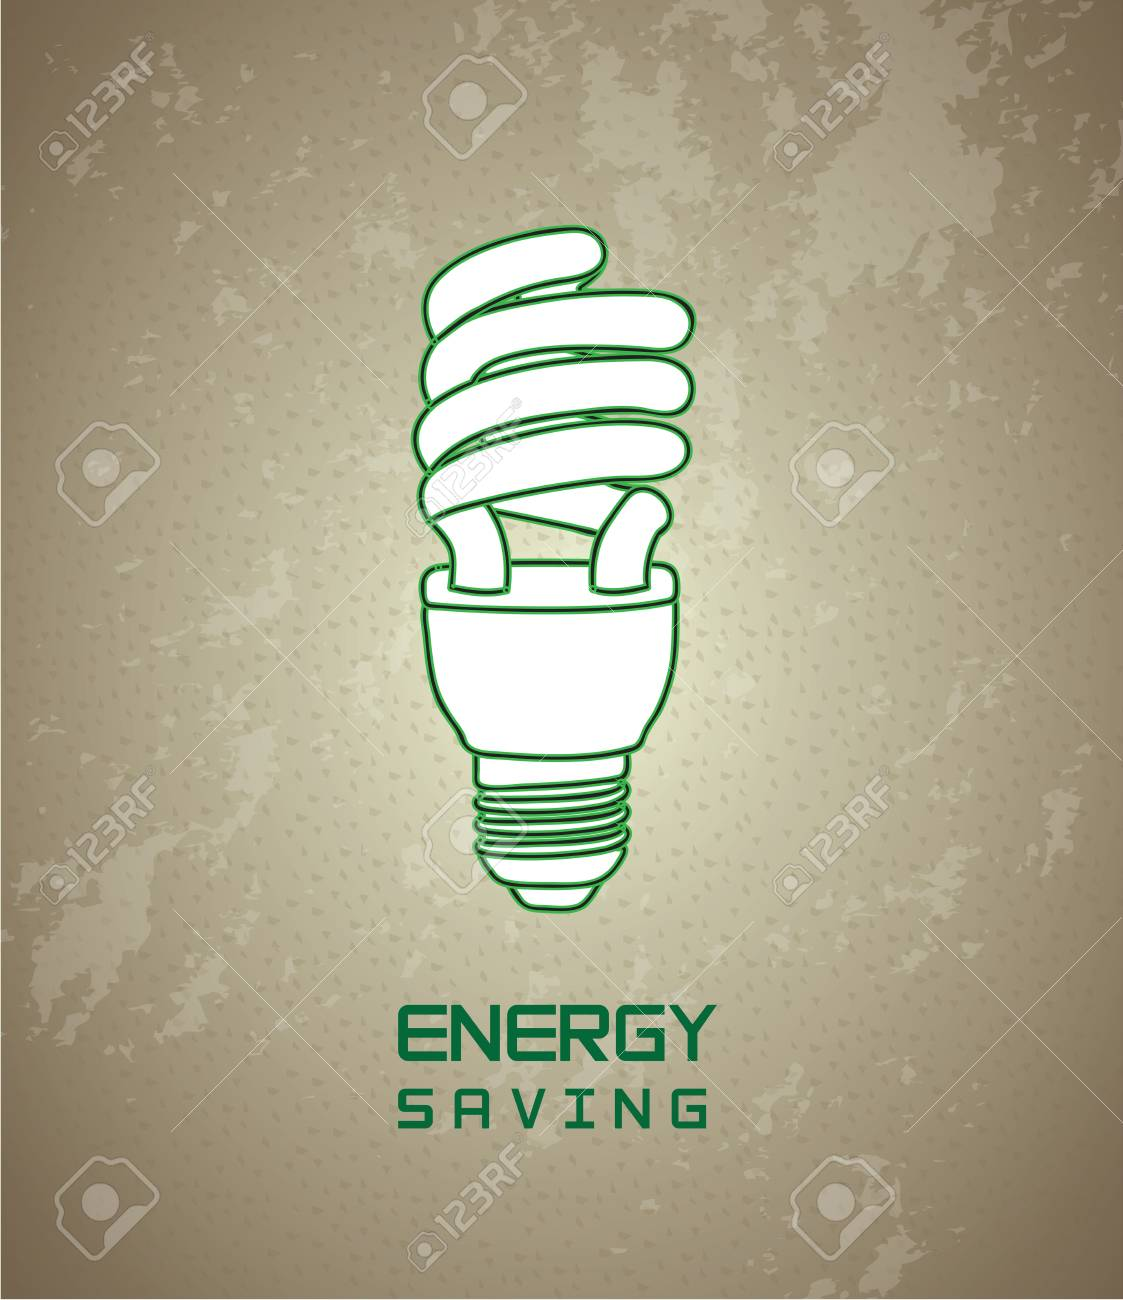 Energy saving over vintage background illustration Stock Vector - 19306329